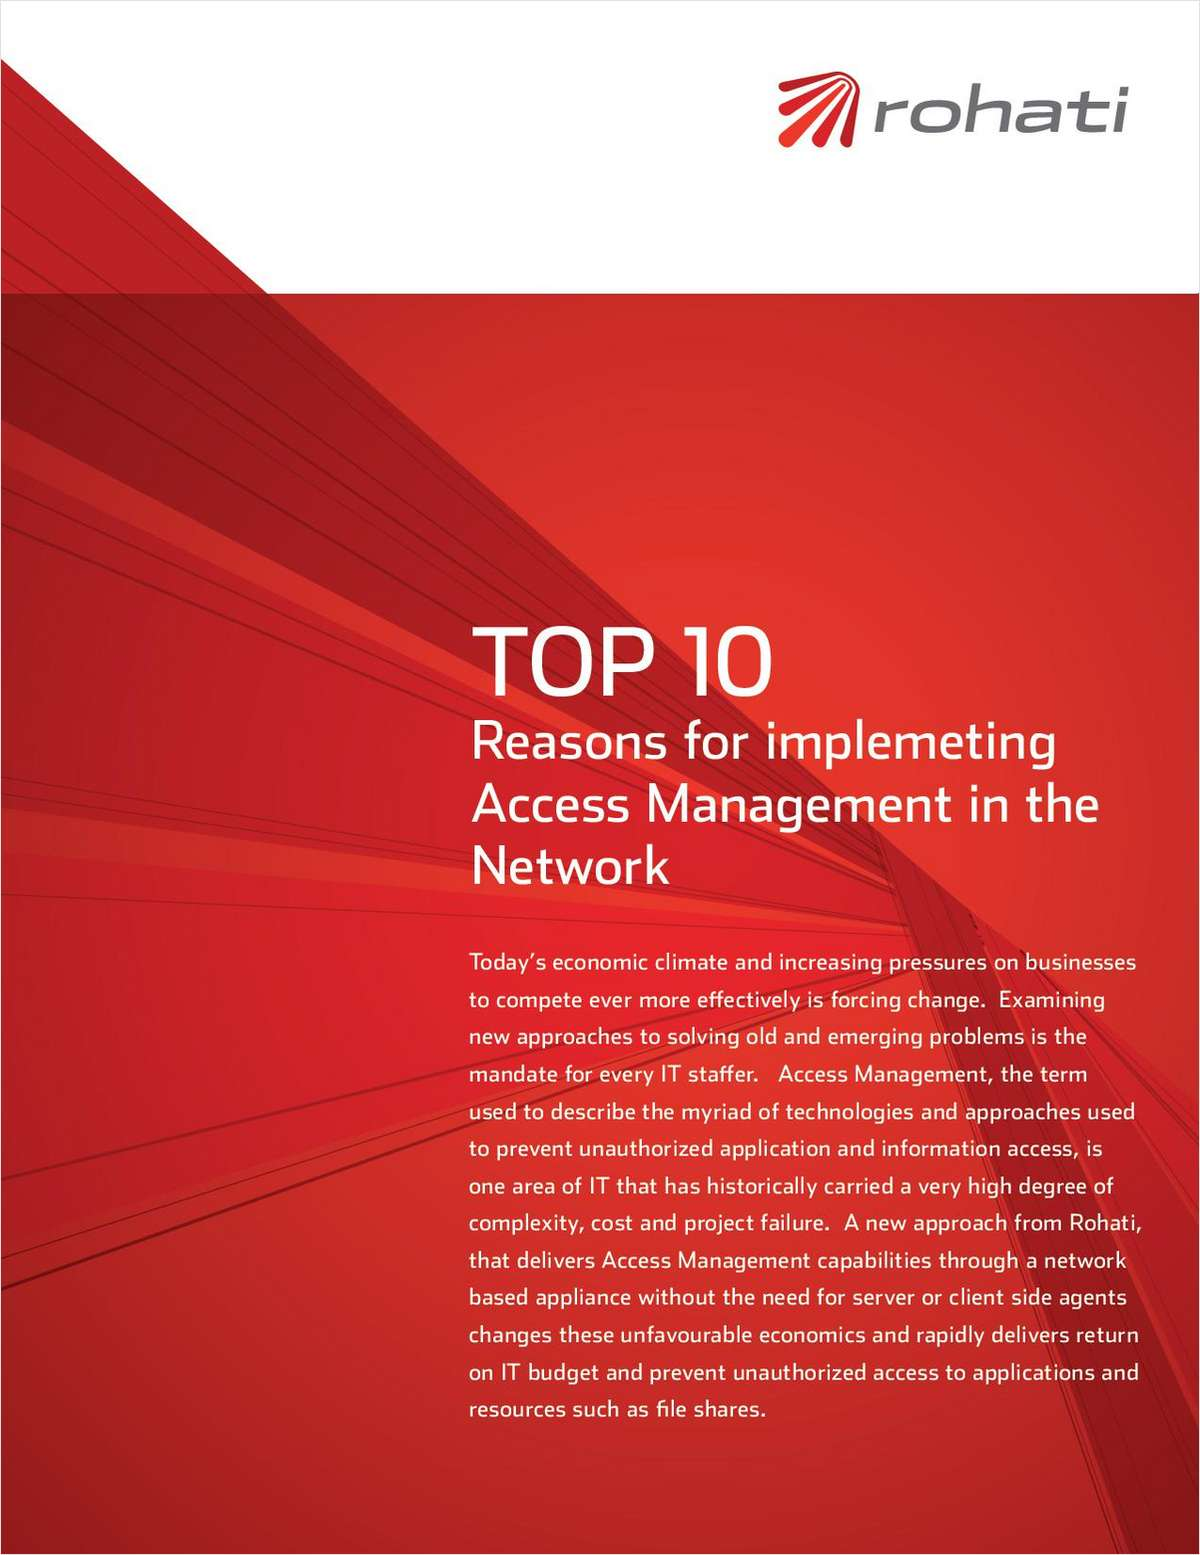 Top 10 Reasons for Implementing Access Management in the Network